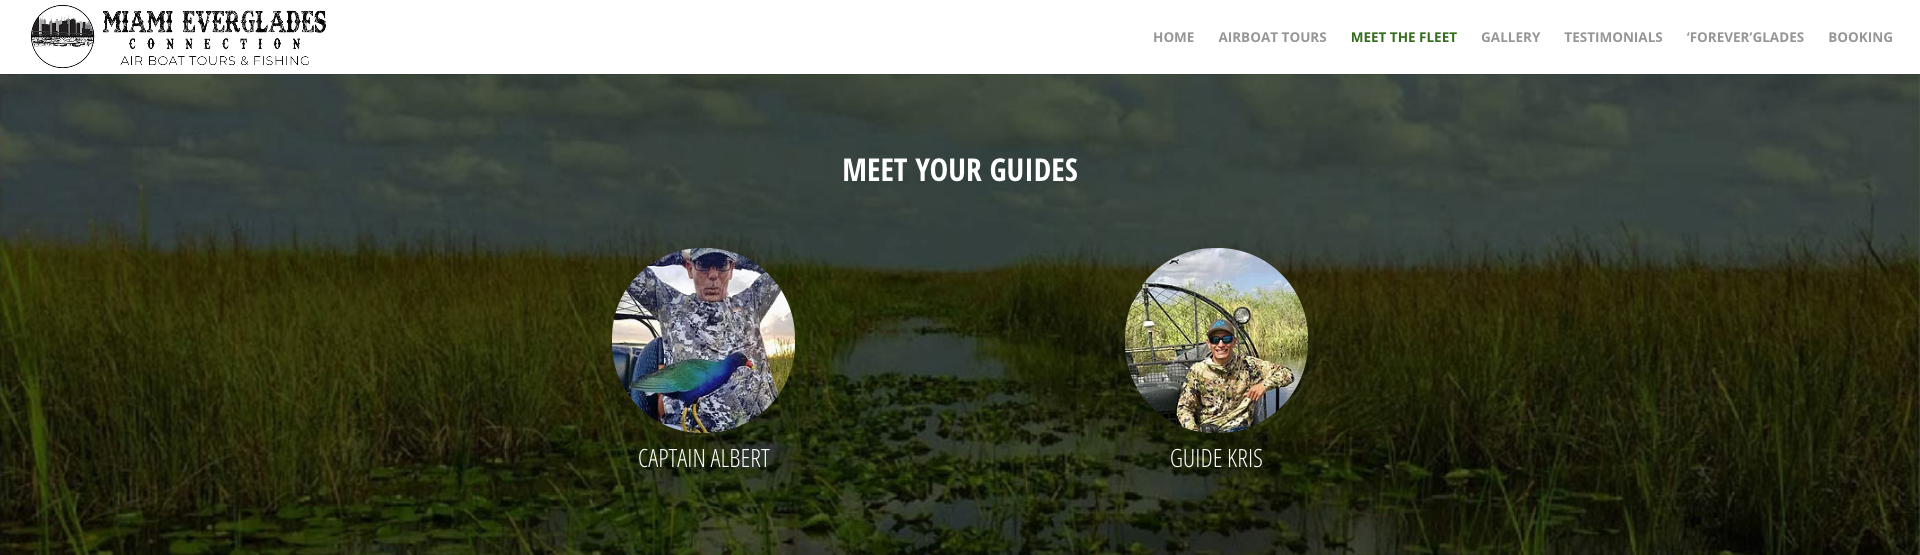 Miami Everglades Connection Website Screenshot